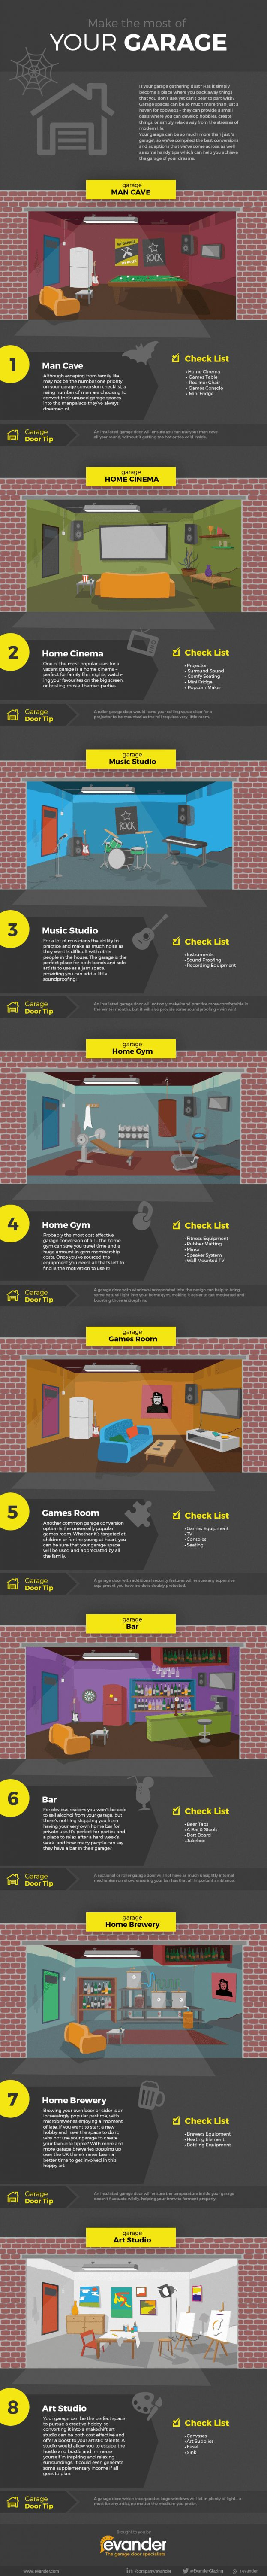 best 25 ultimate man cave ideas only on pinterest car man cave man cave ideas